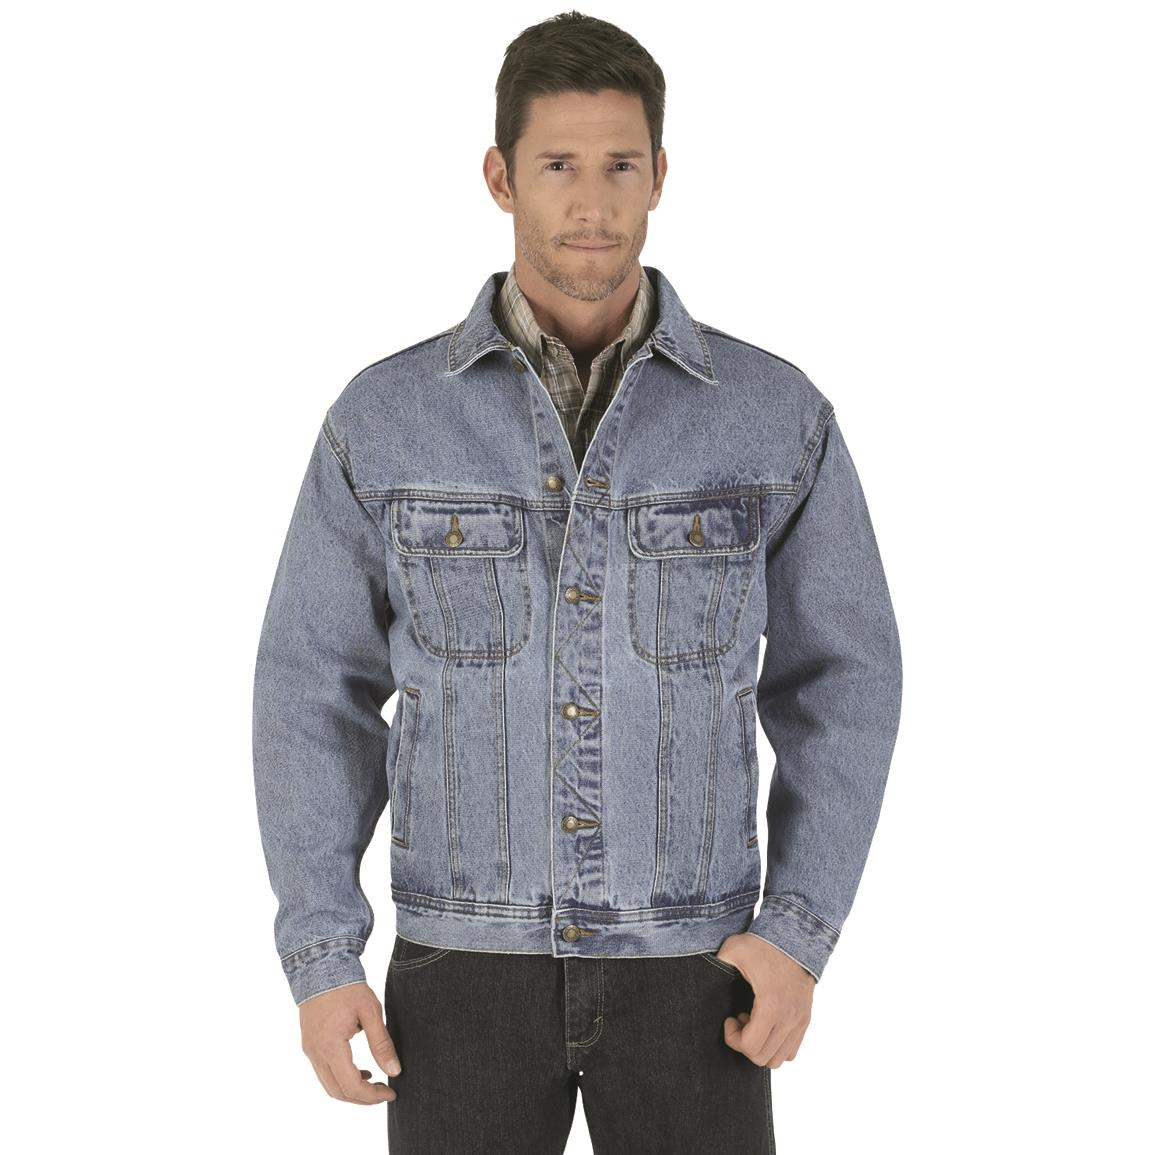 Wrangler Rugged Wear Men's Denim Jacket, Vintage Indigo